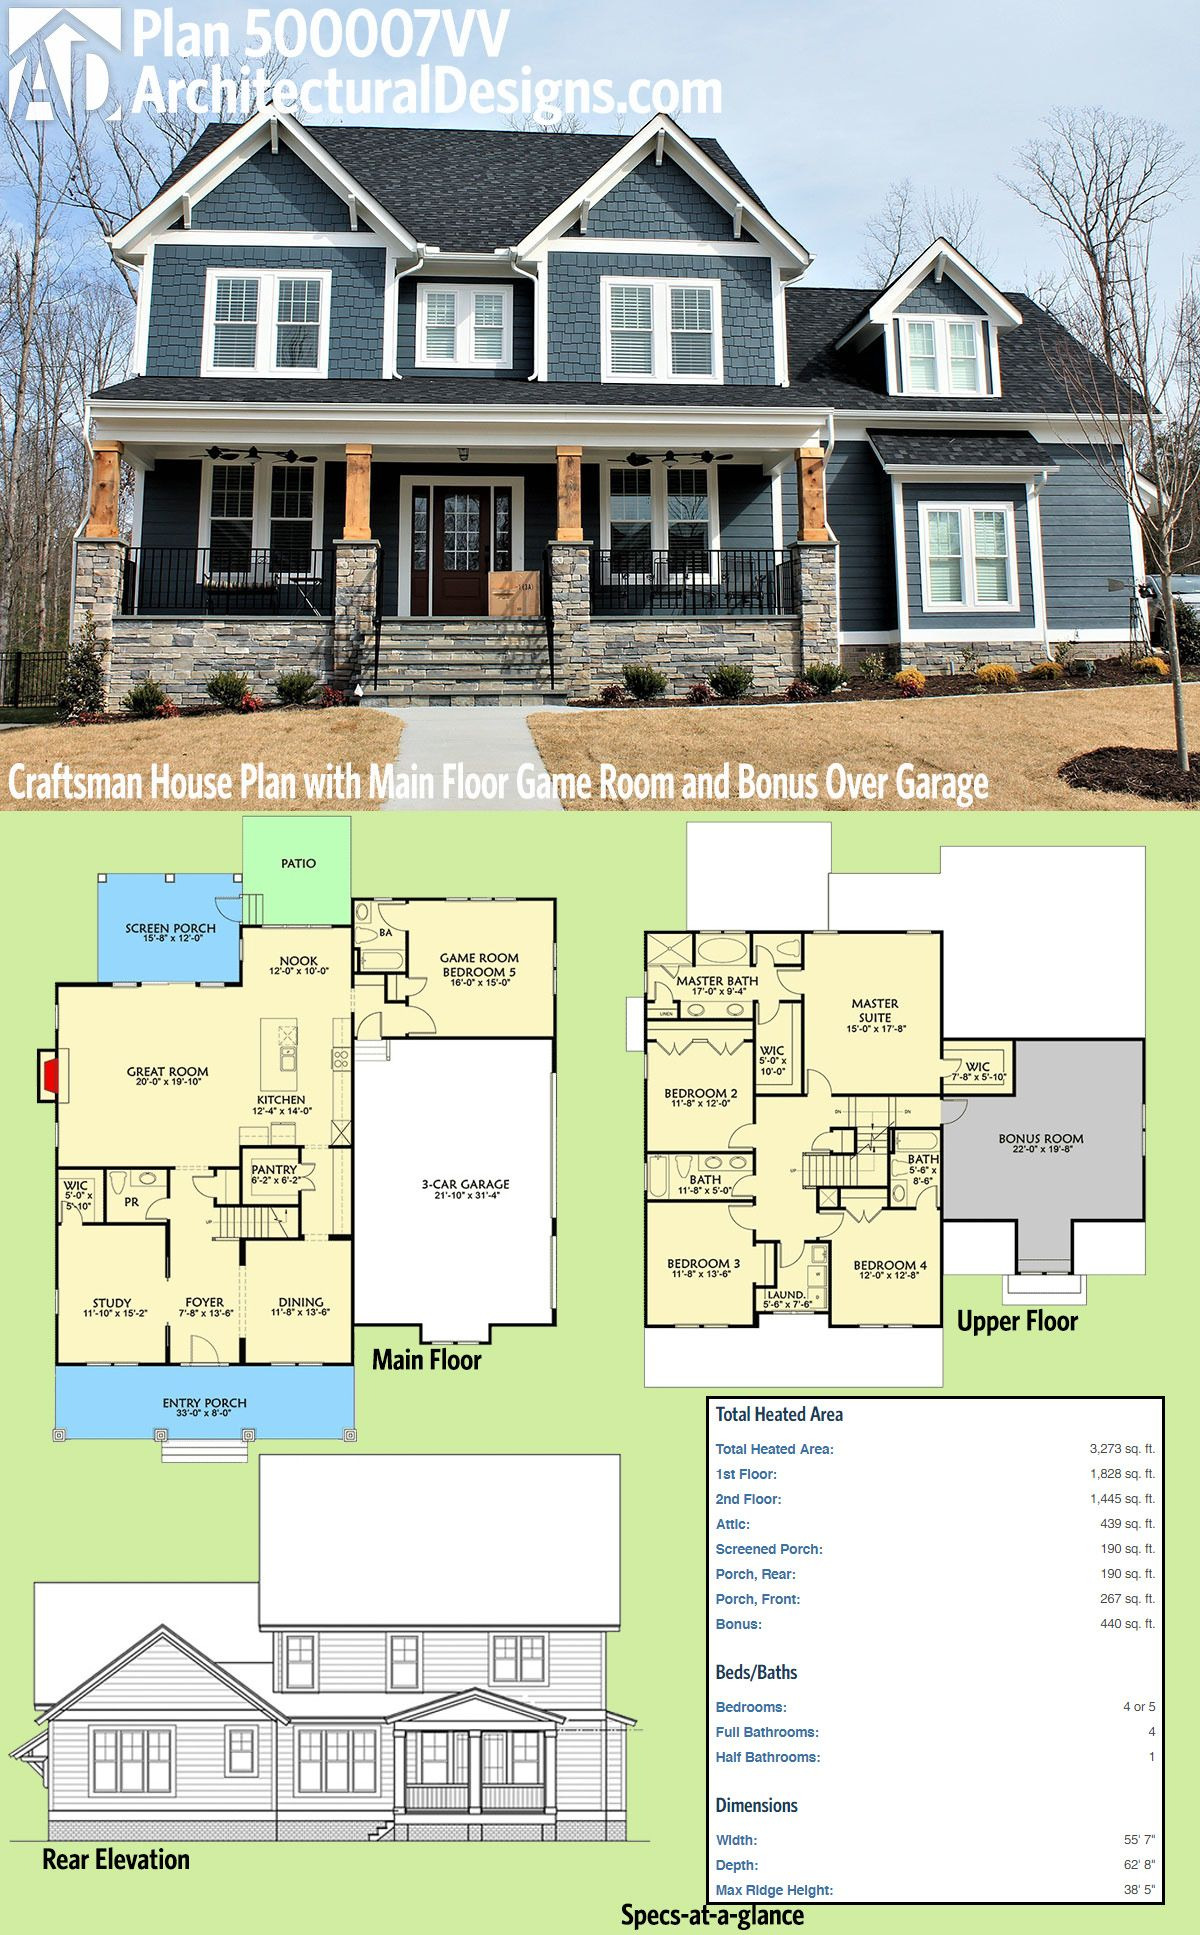 House Plans with Screened Porches Beautiful Architectural Designs Craftsman House Plan Vv Has A